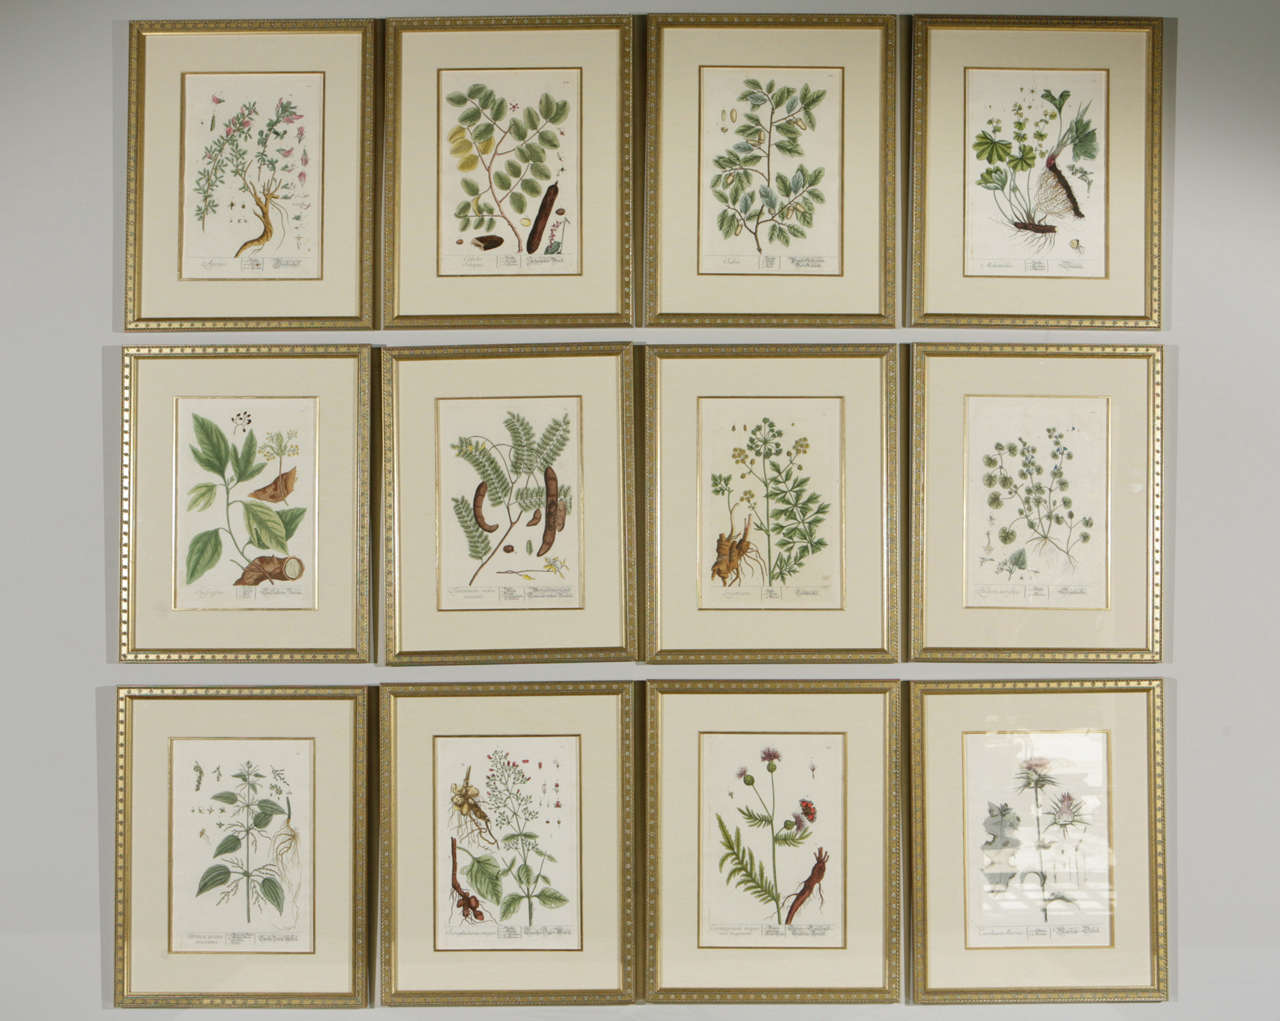 Awesome Botanical Framed Art Photos - Picture Frame Ideas ...